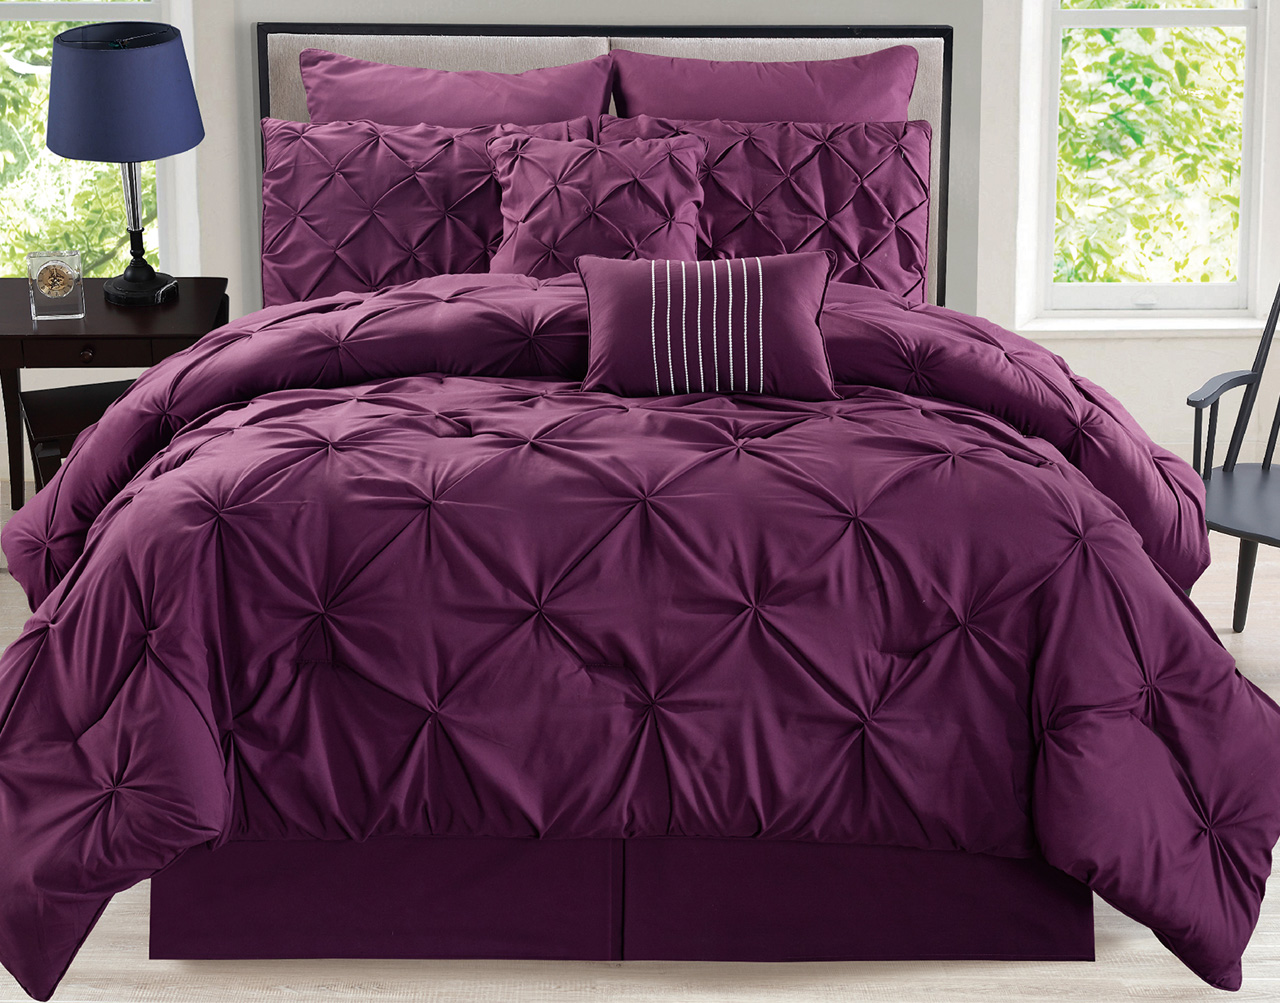 12 Piece Rochelle Pinched Pleat Plum Bed In A Bag Set